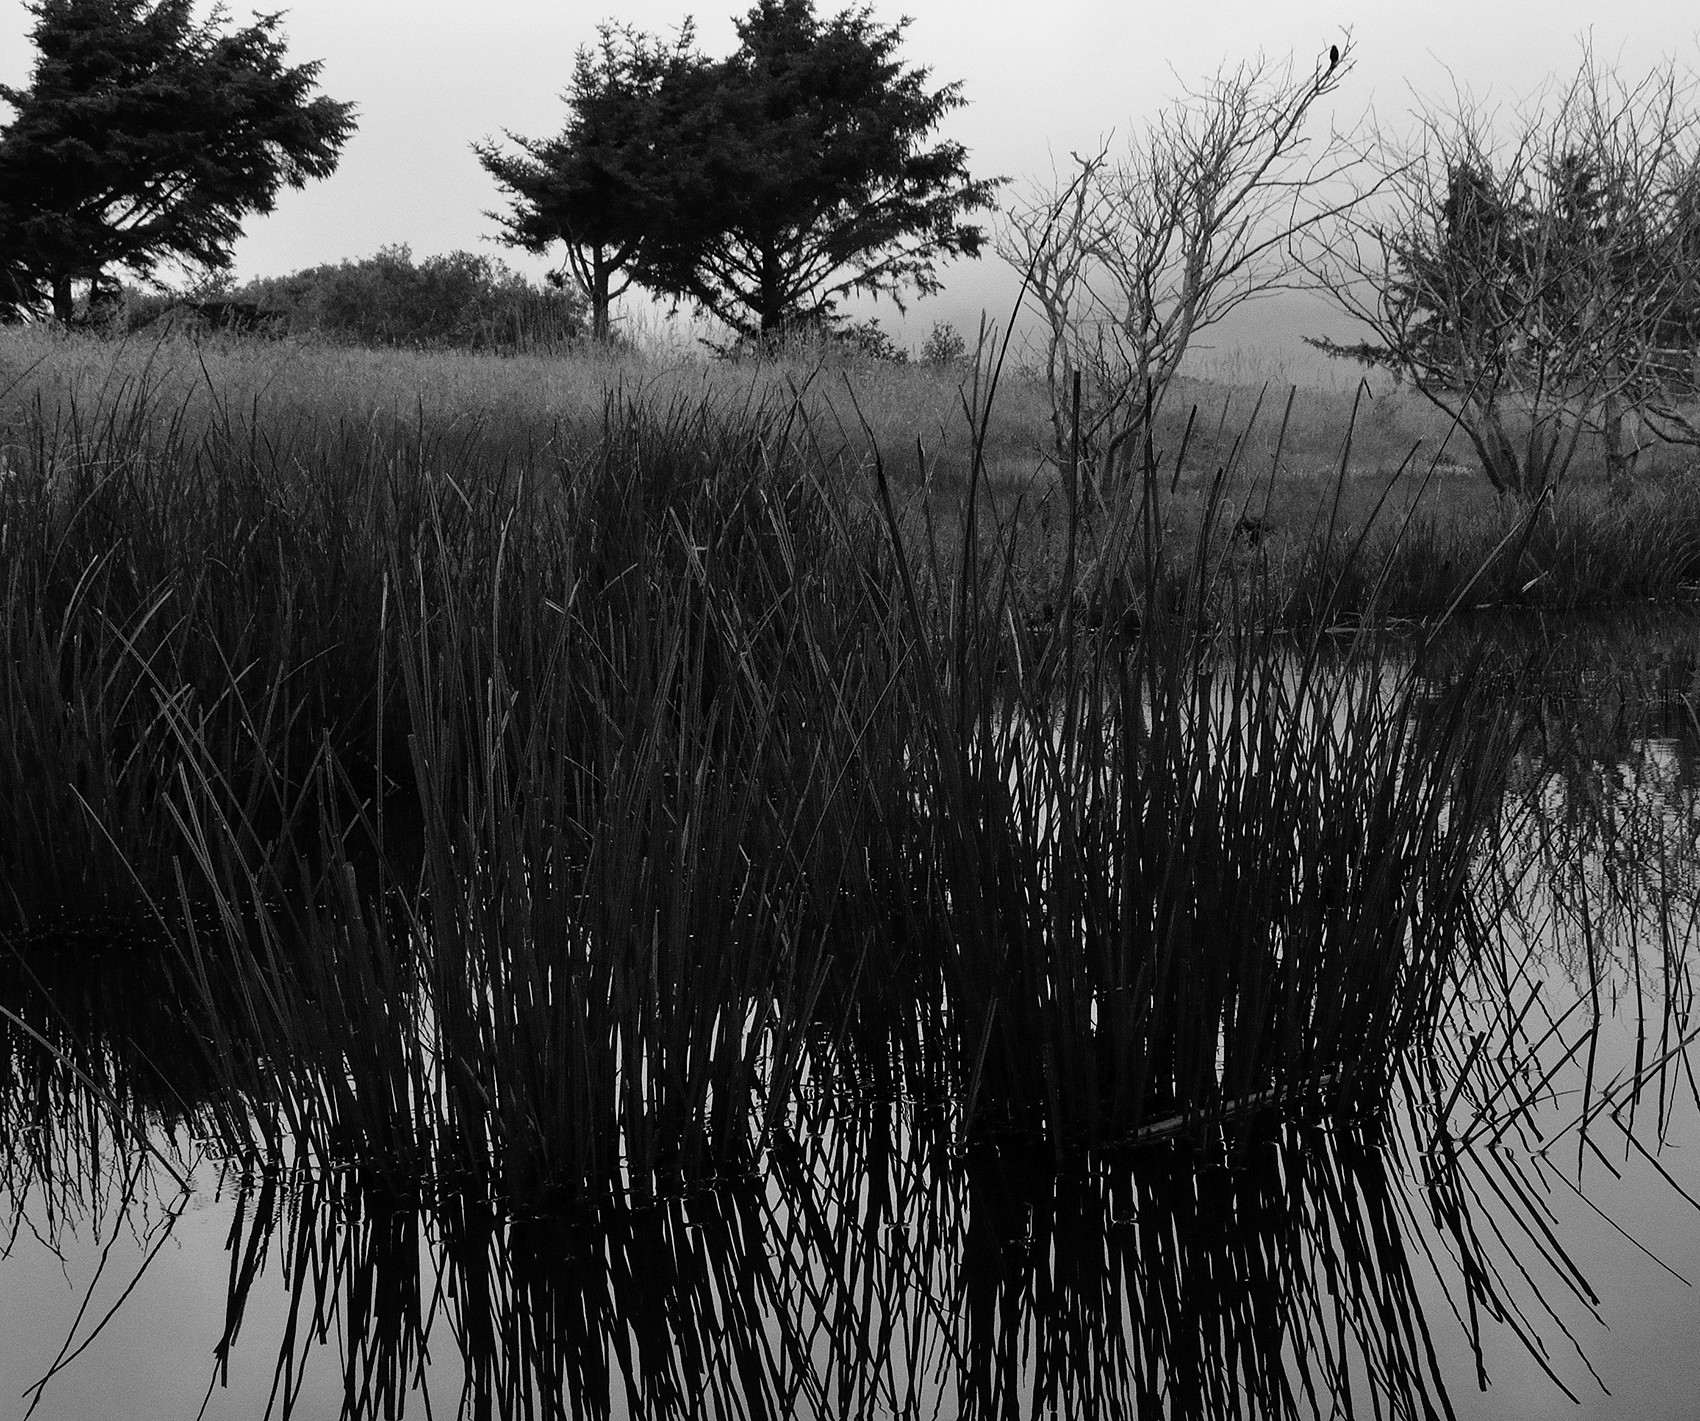 lagoon grass and trees 200 res 1700.jpg